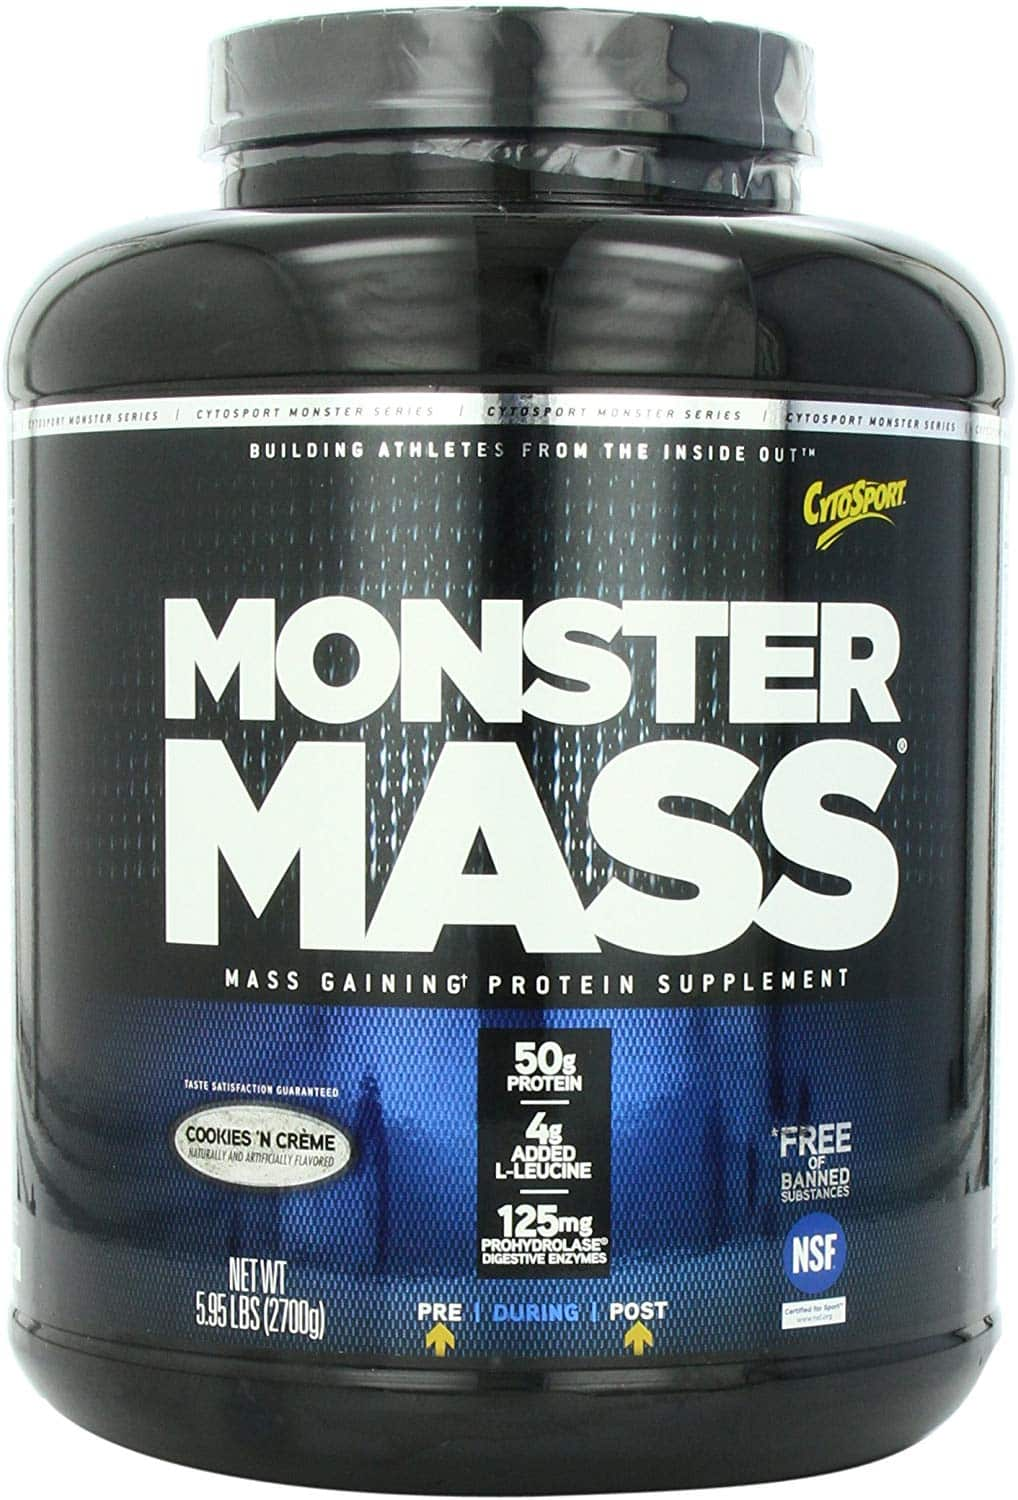 Susu CytoSport Monster Mass